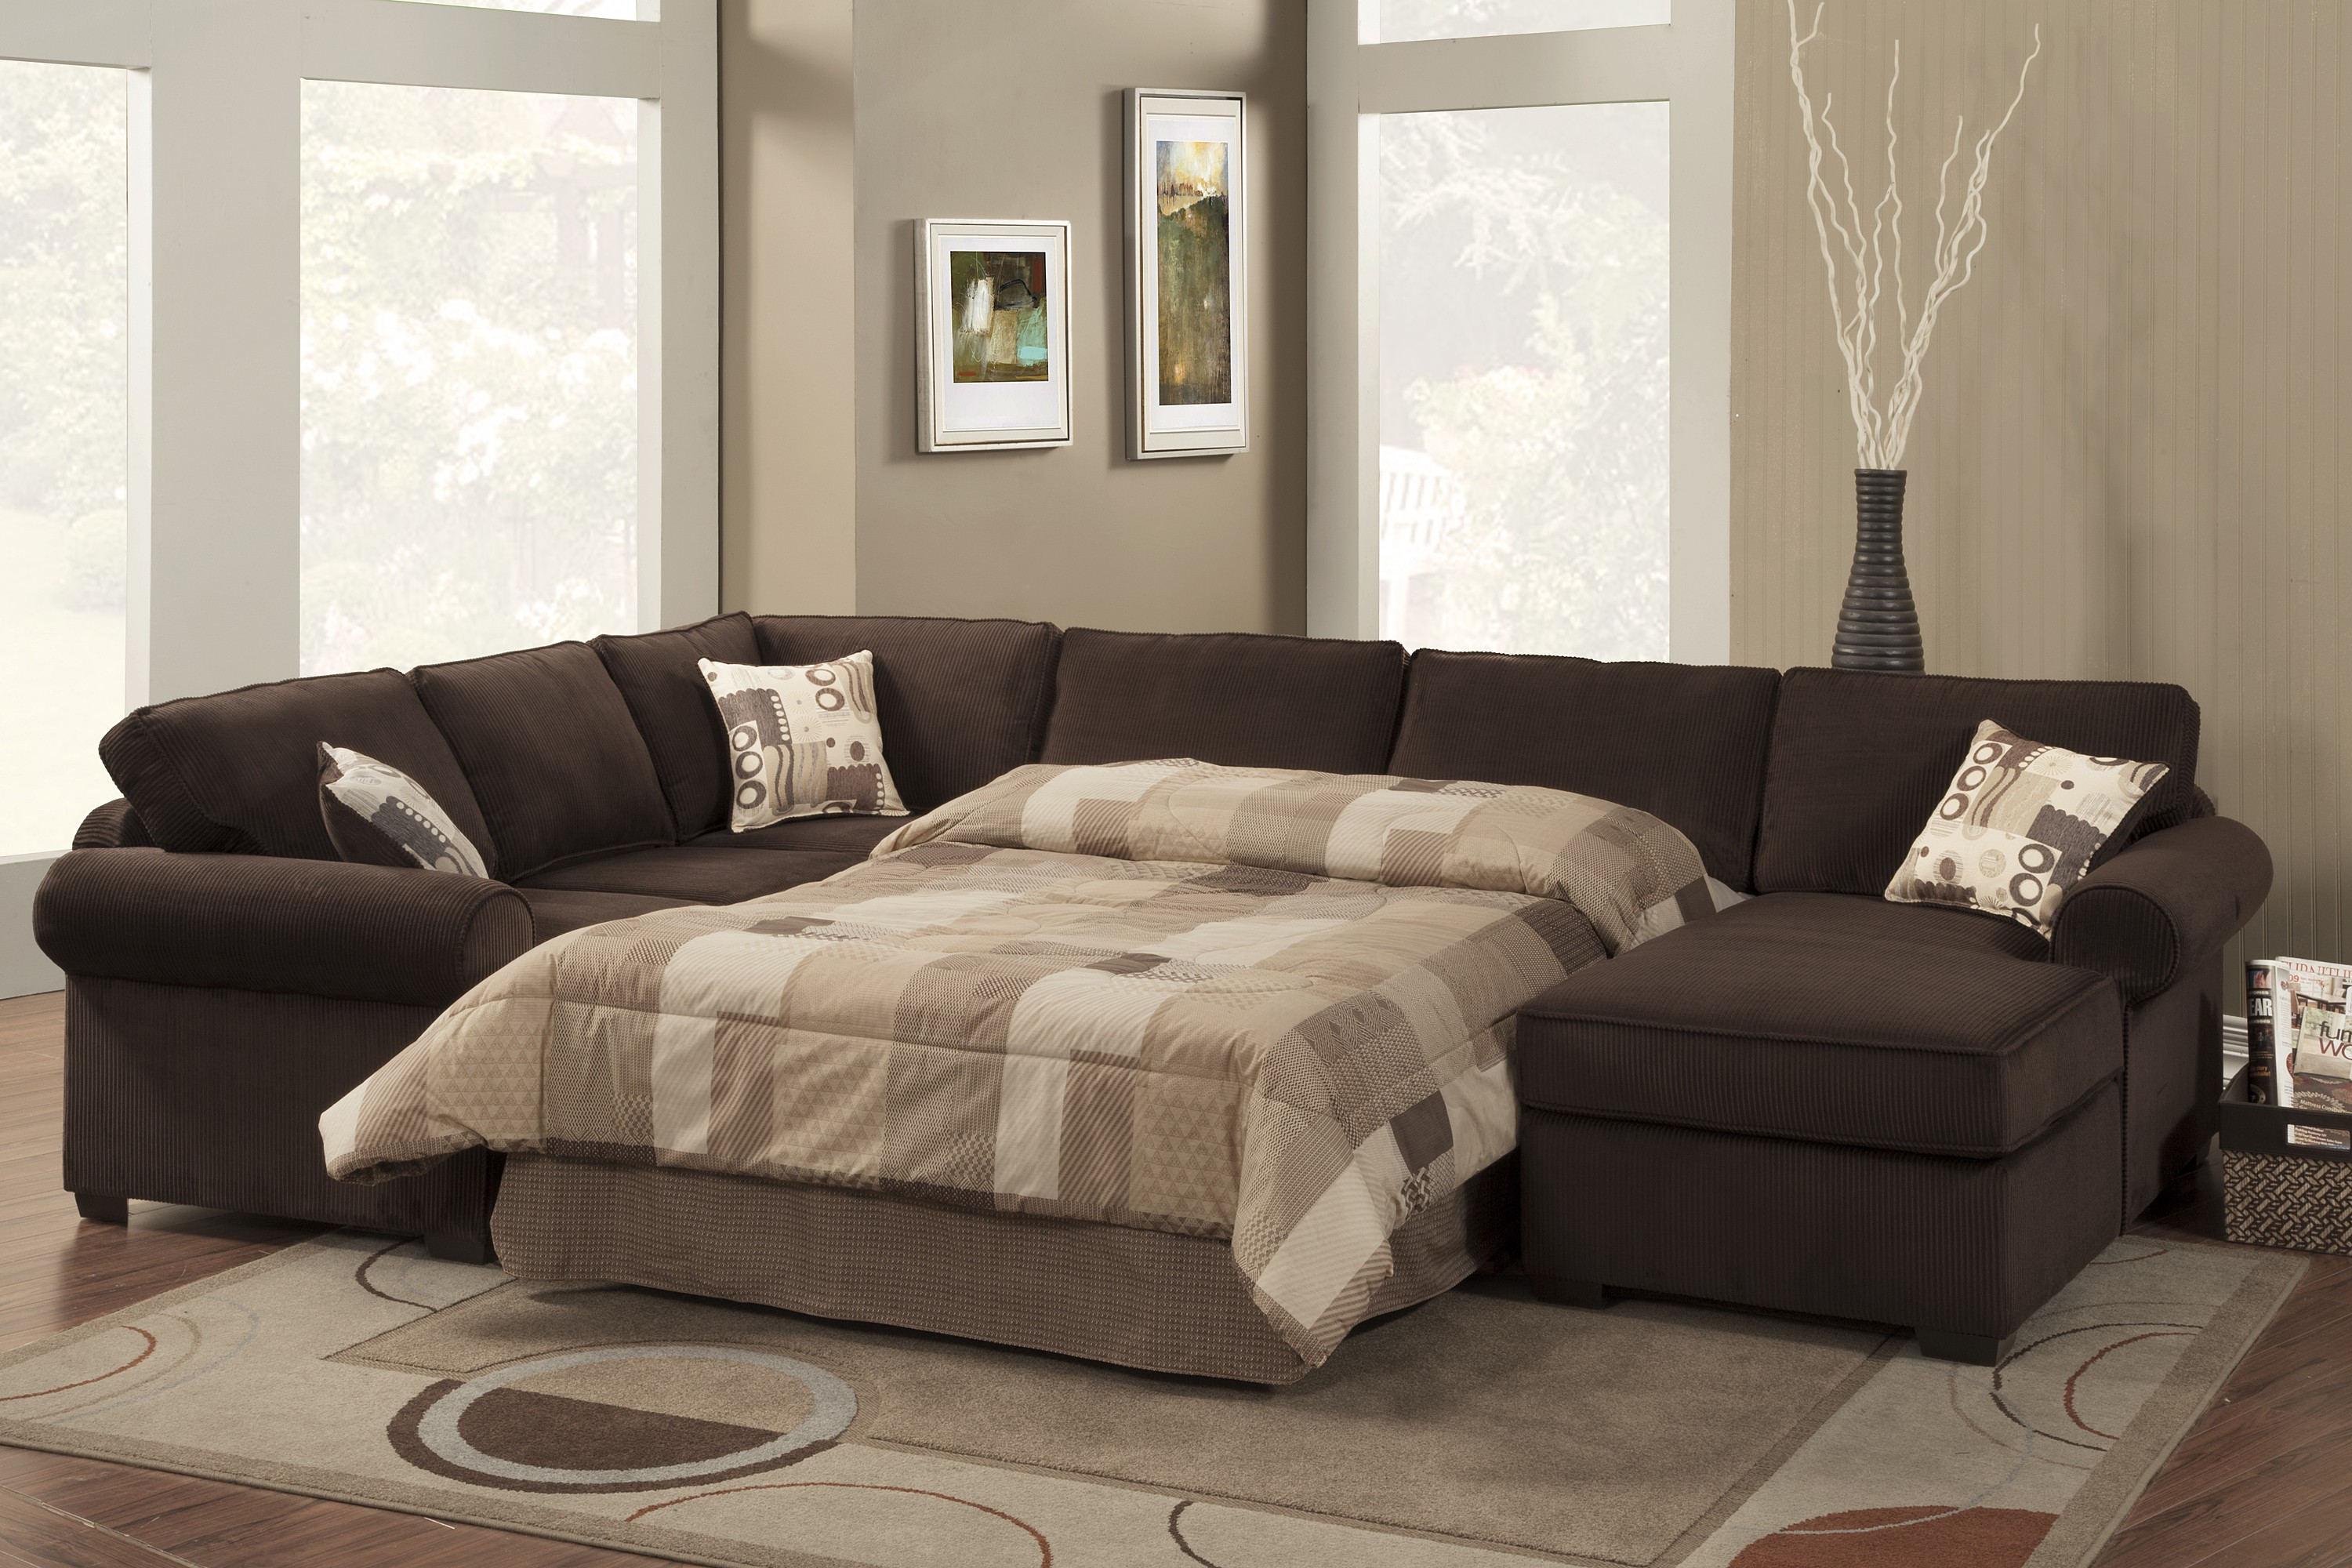 Sectional Sofa Sleepers for Better Sleep Quality and Comfort | HomesFeed